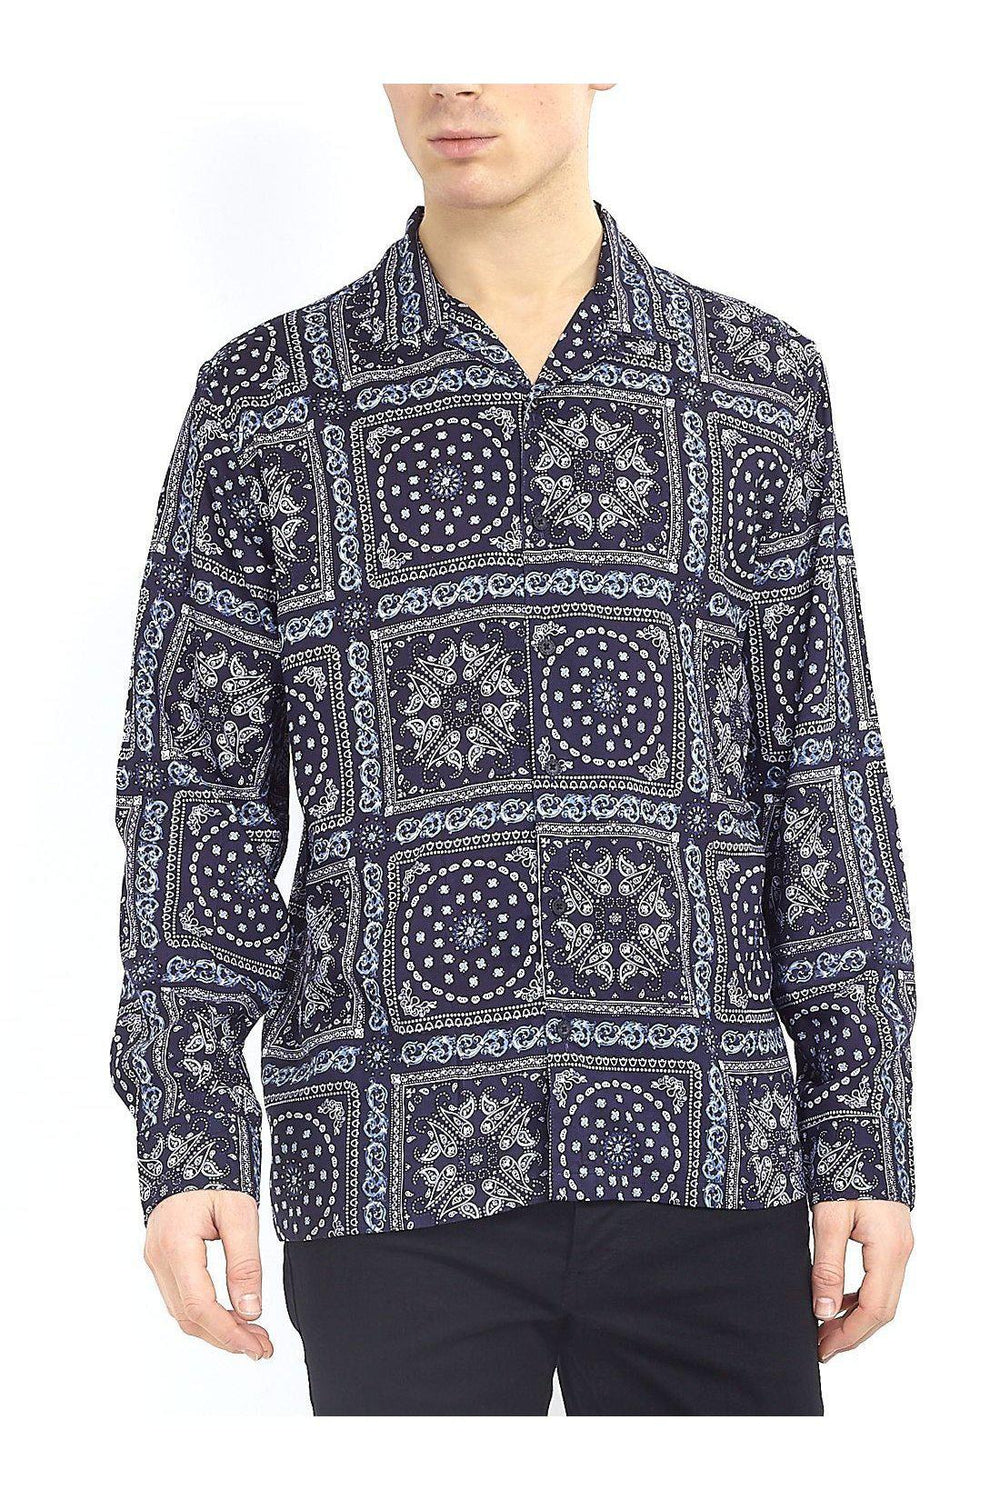 Paisley Silky Long Sleeve Shirt Navy